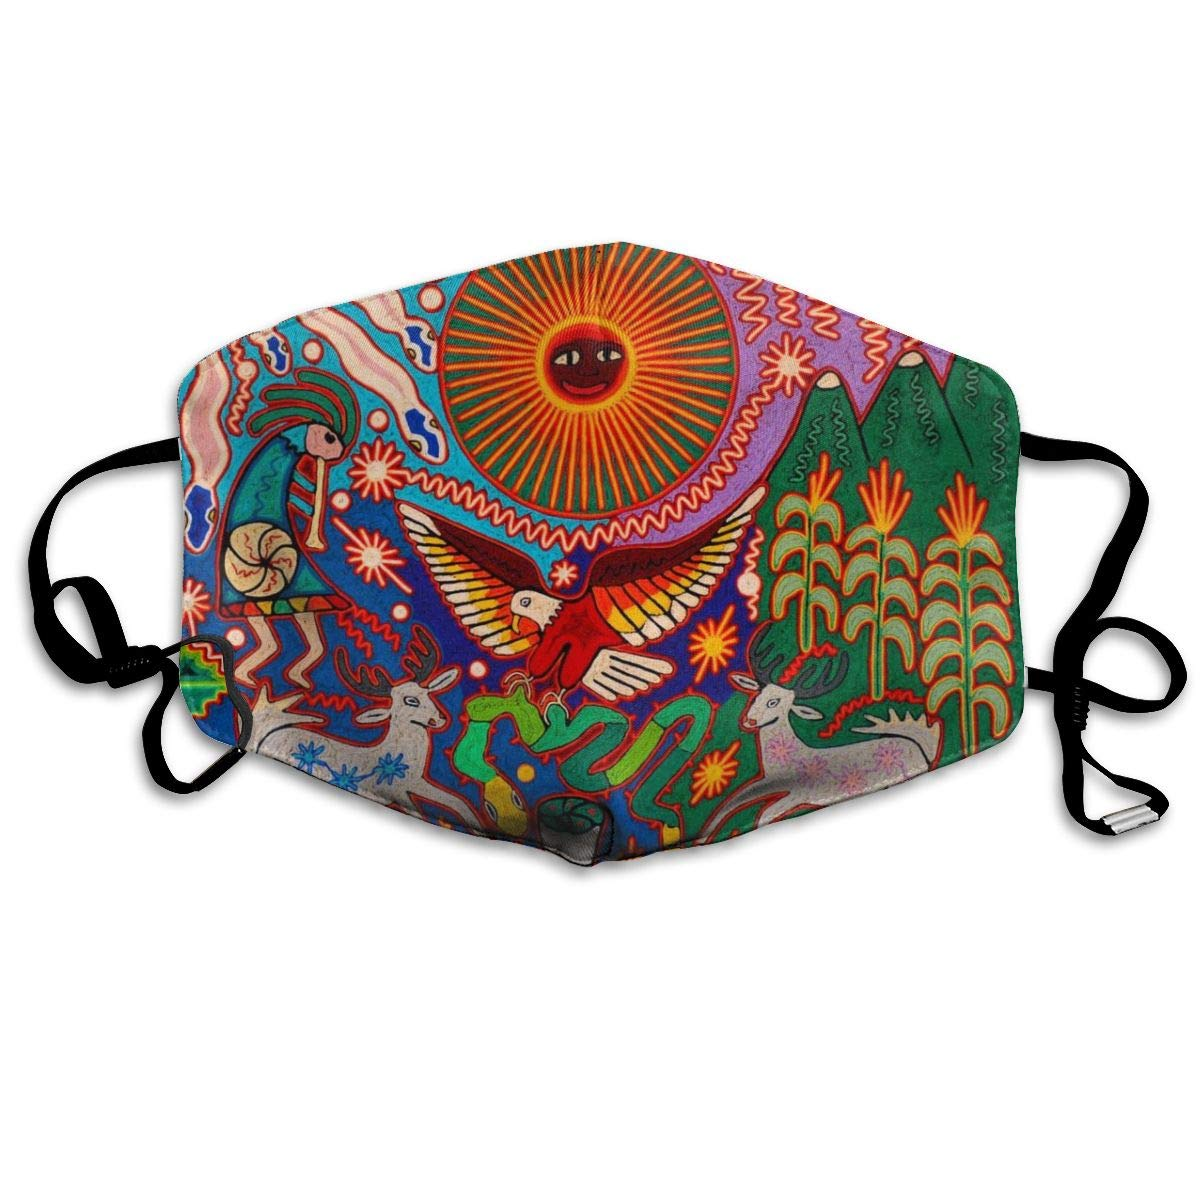 NiYoung Breathable Anti Dust Mouth Mask With Adjustable Earloop, Warm Windproof Reusable Washable Half Face Mask, Oaxaca Mexico